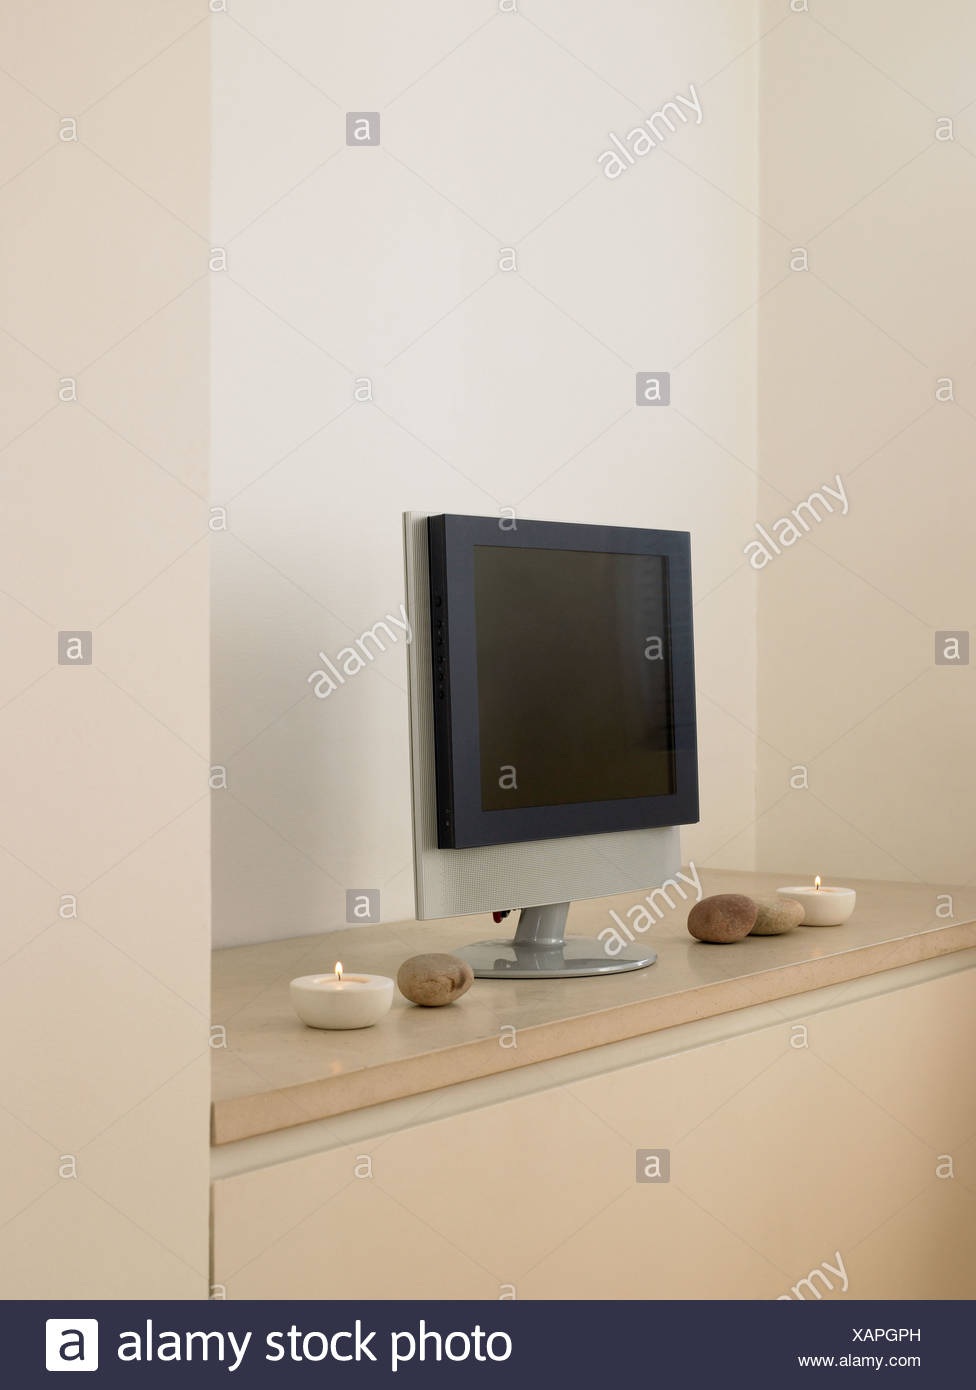 Television screen on shelf - Stock Image